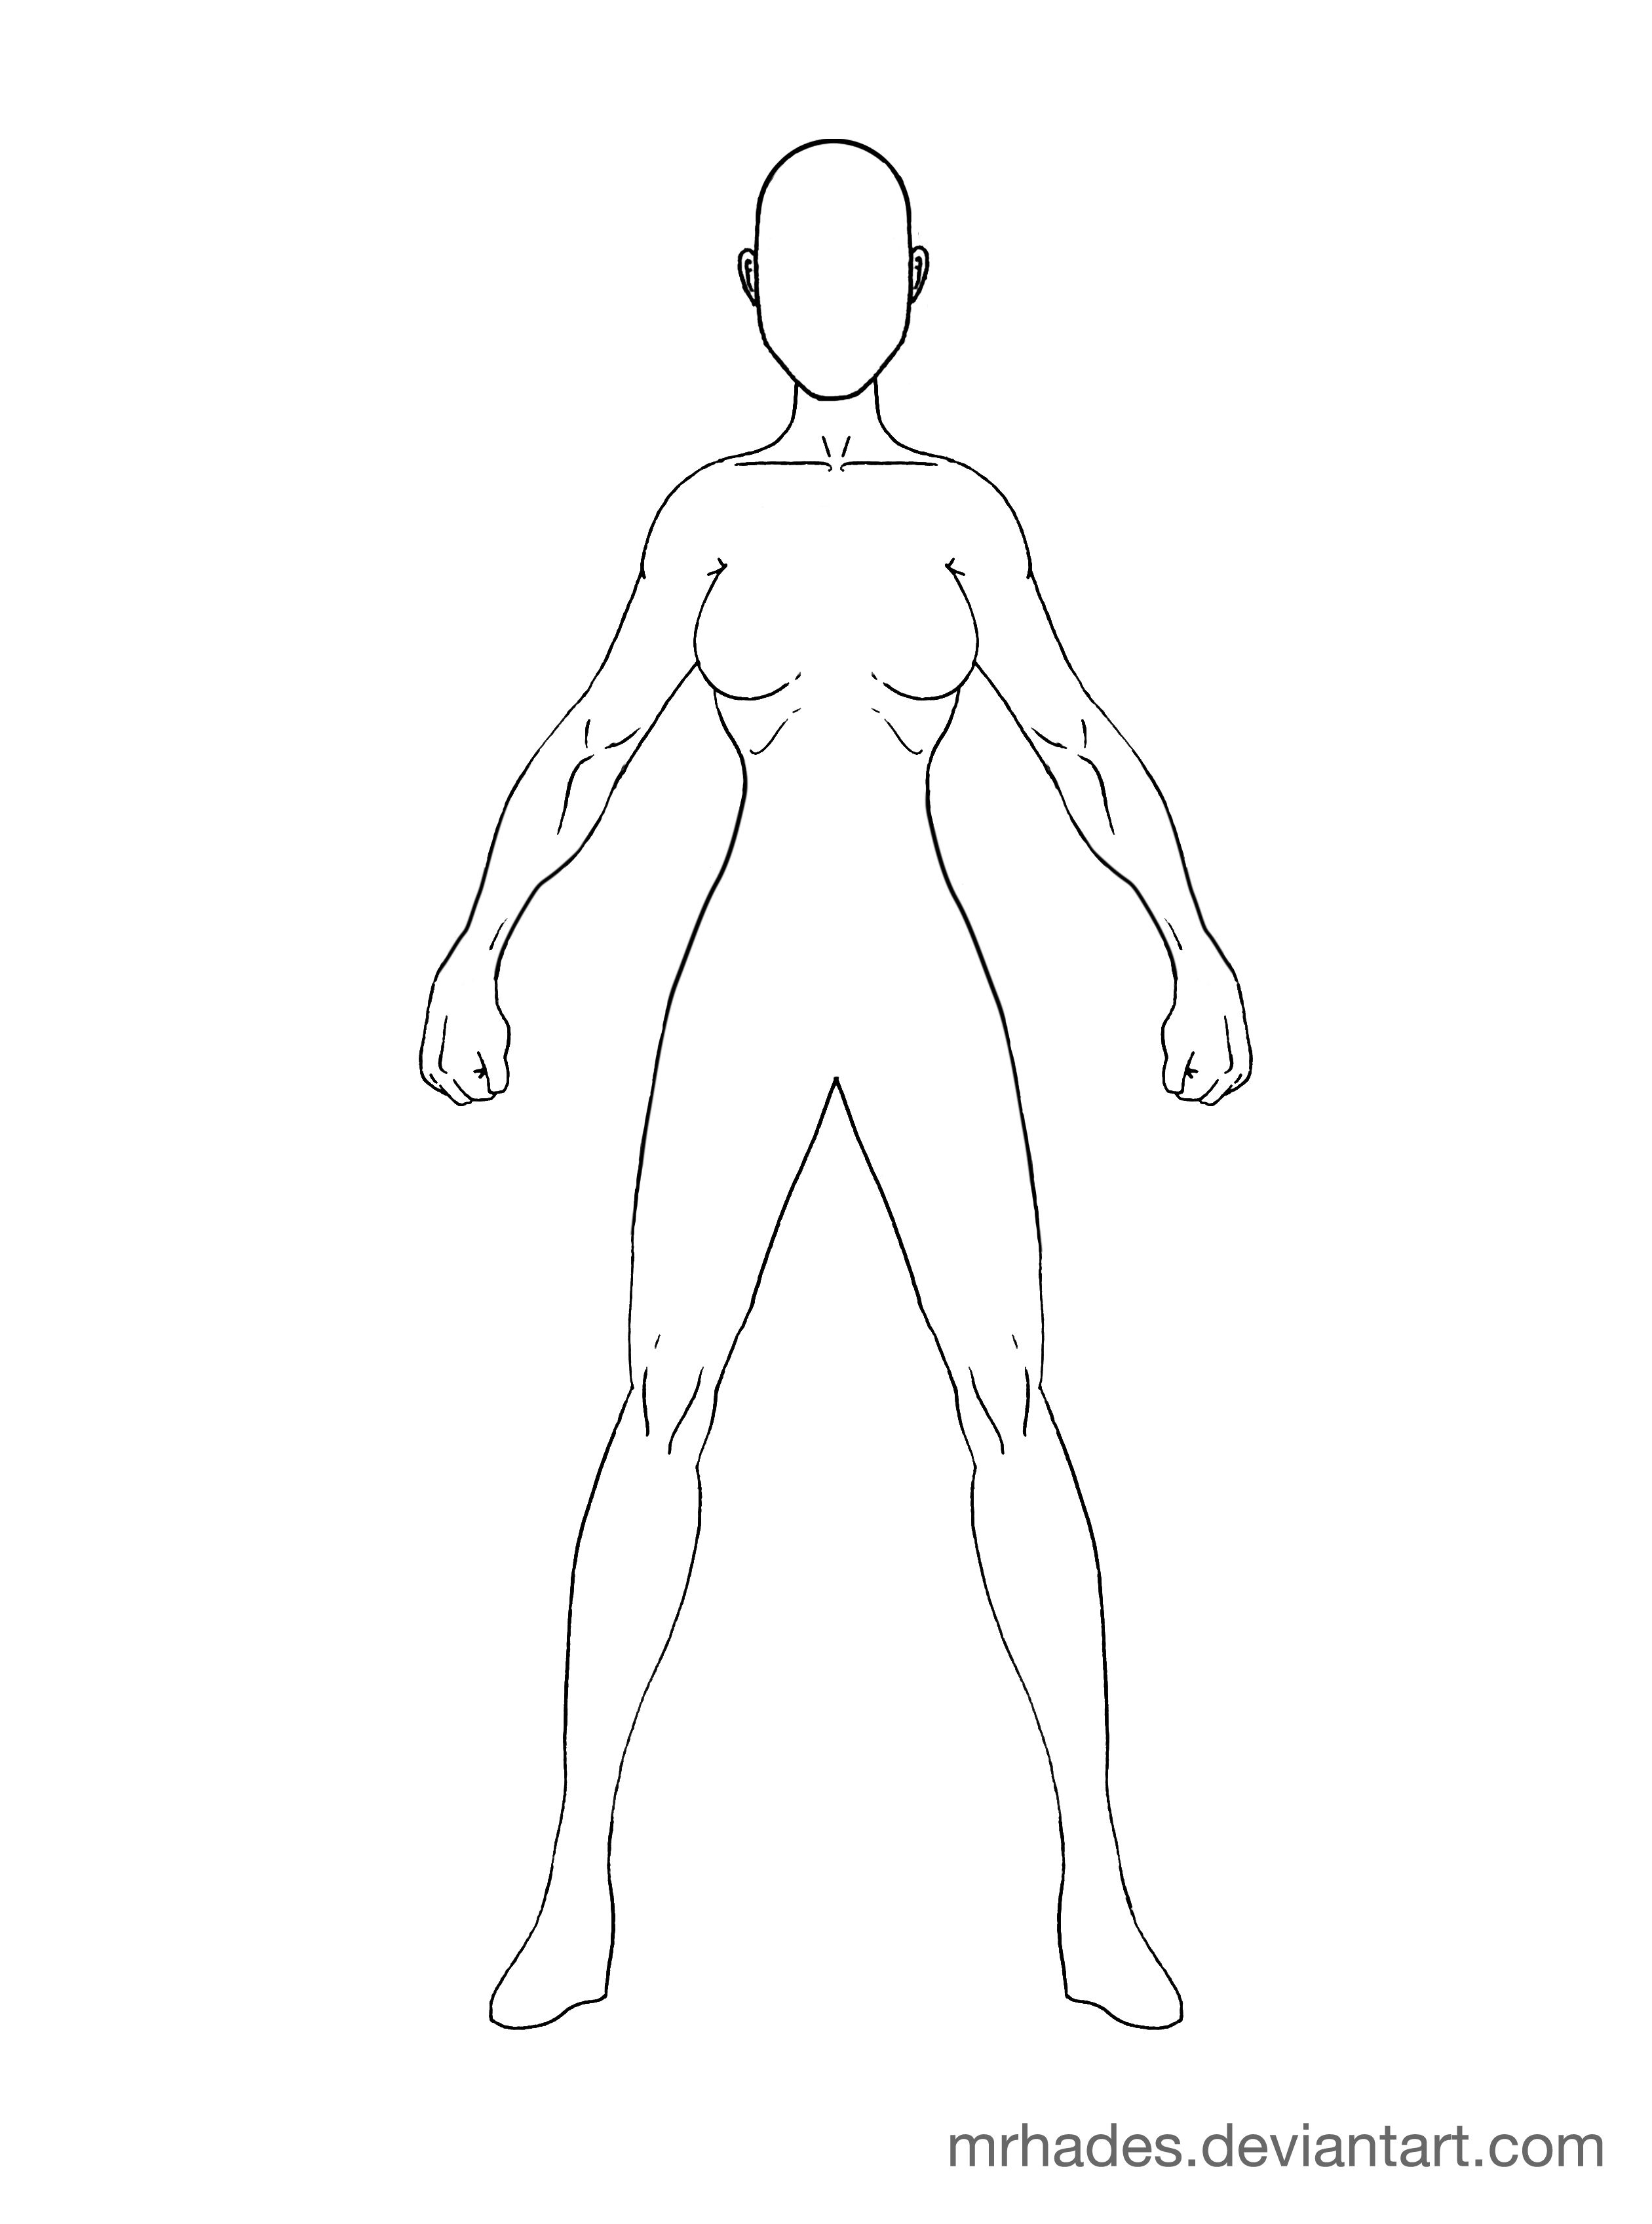 How to draw spiderman body outline spiderman outlines and drawings woman template pronofoot35fo Gallery